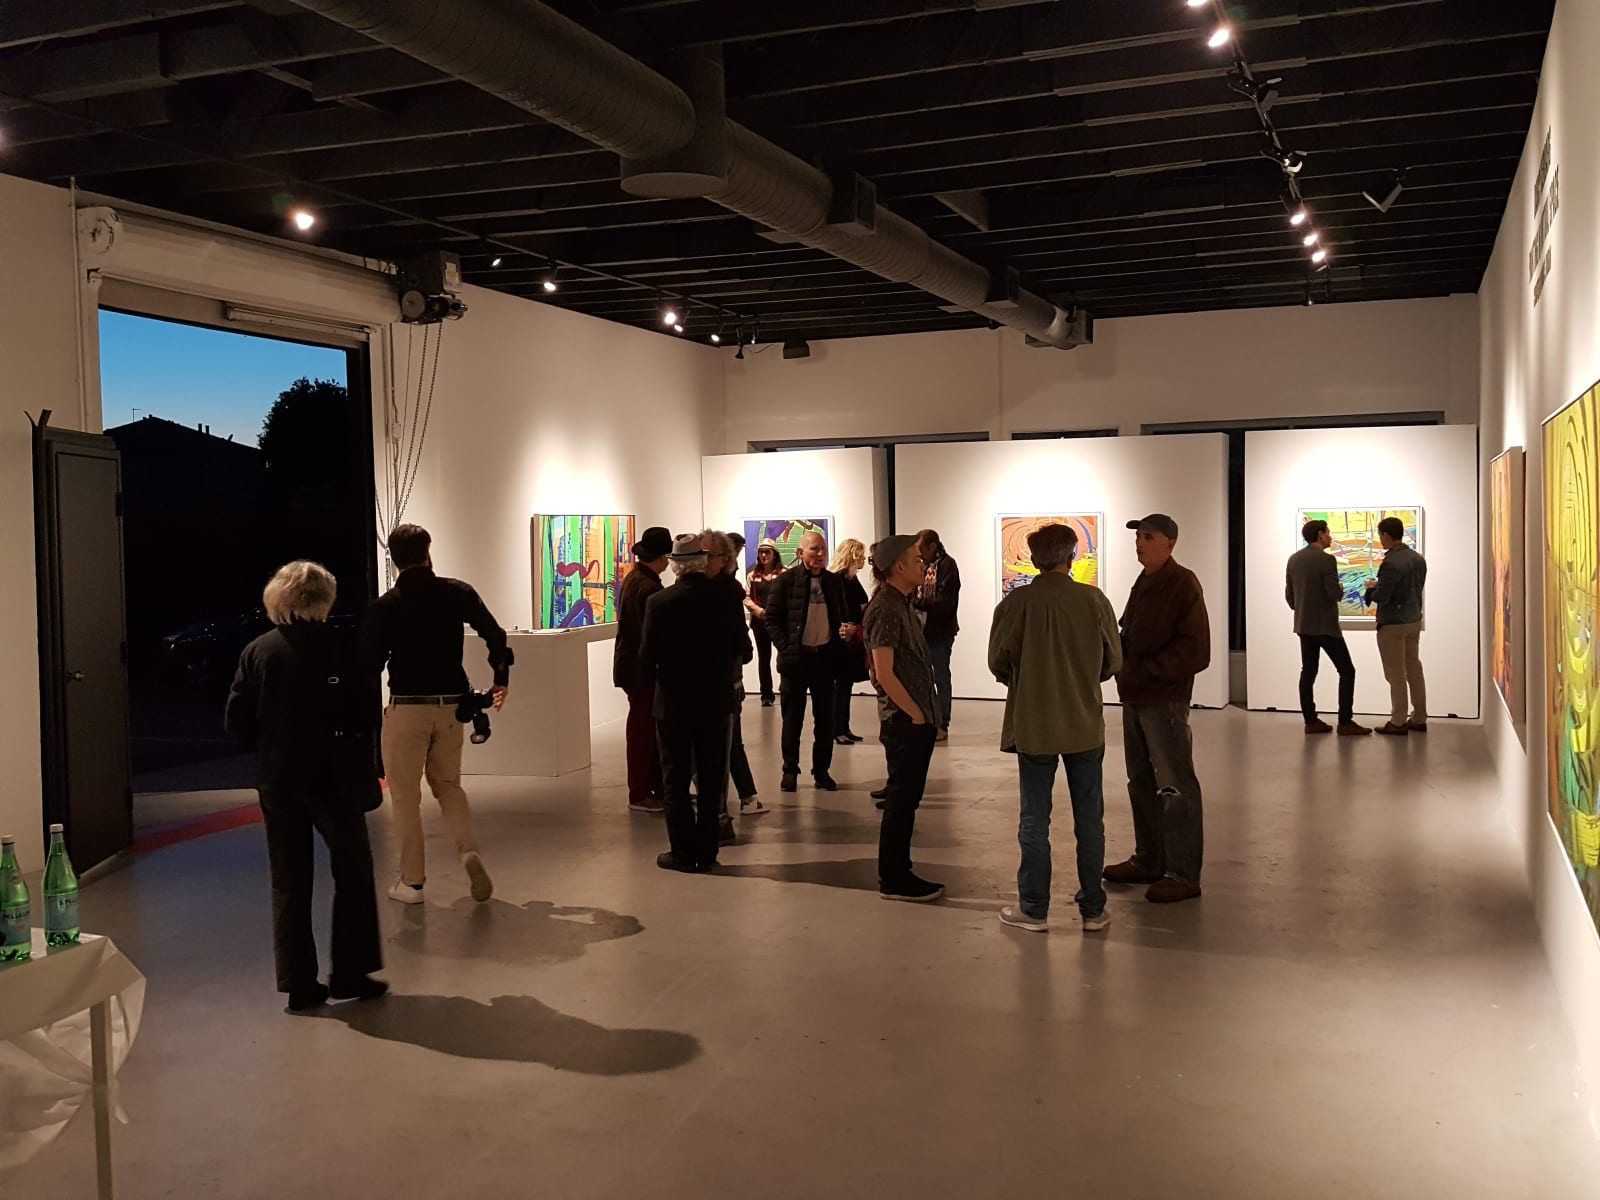 Darcy Gerbarg – Paintings in Virtual Space – Curated by David S. Rubin